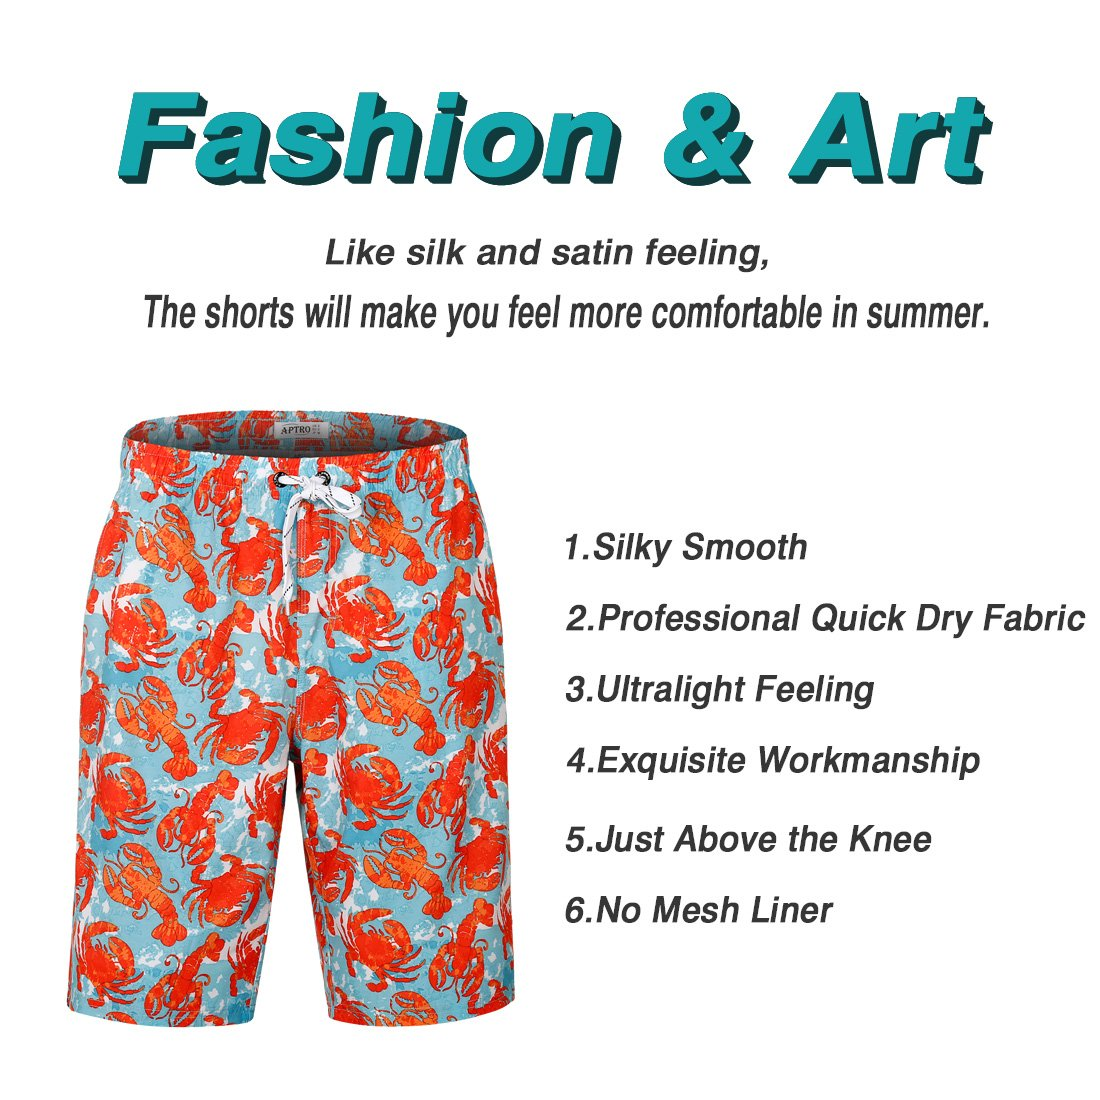 APTRO Men's Swim Trunks Crab Printing Bathing Suit #HW016 XXL by APTRO (Image #5)